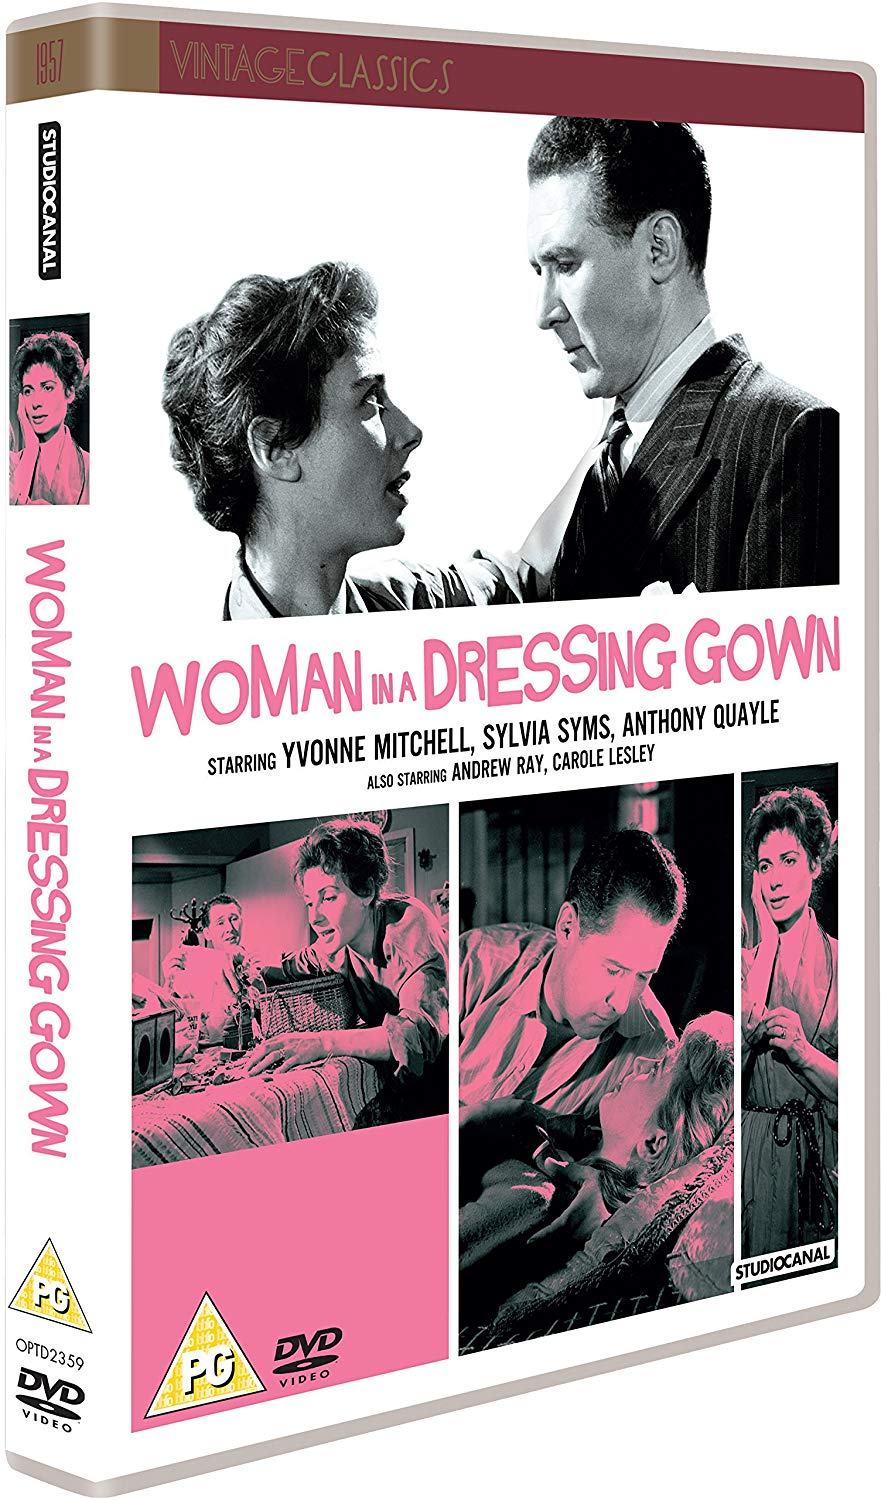 Buy Woman in a Dressing Gown